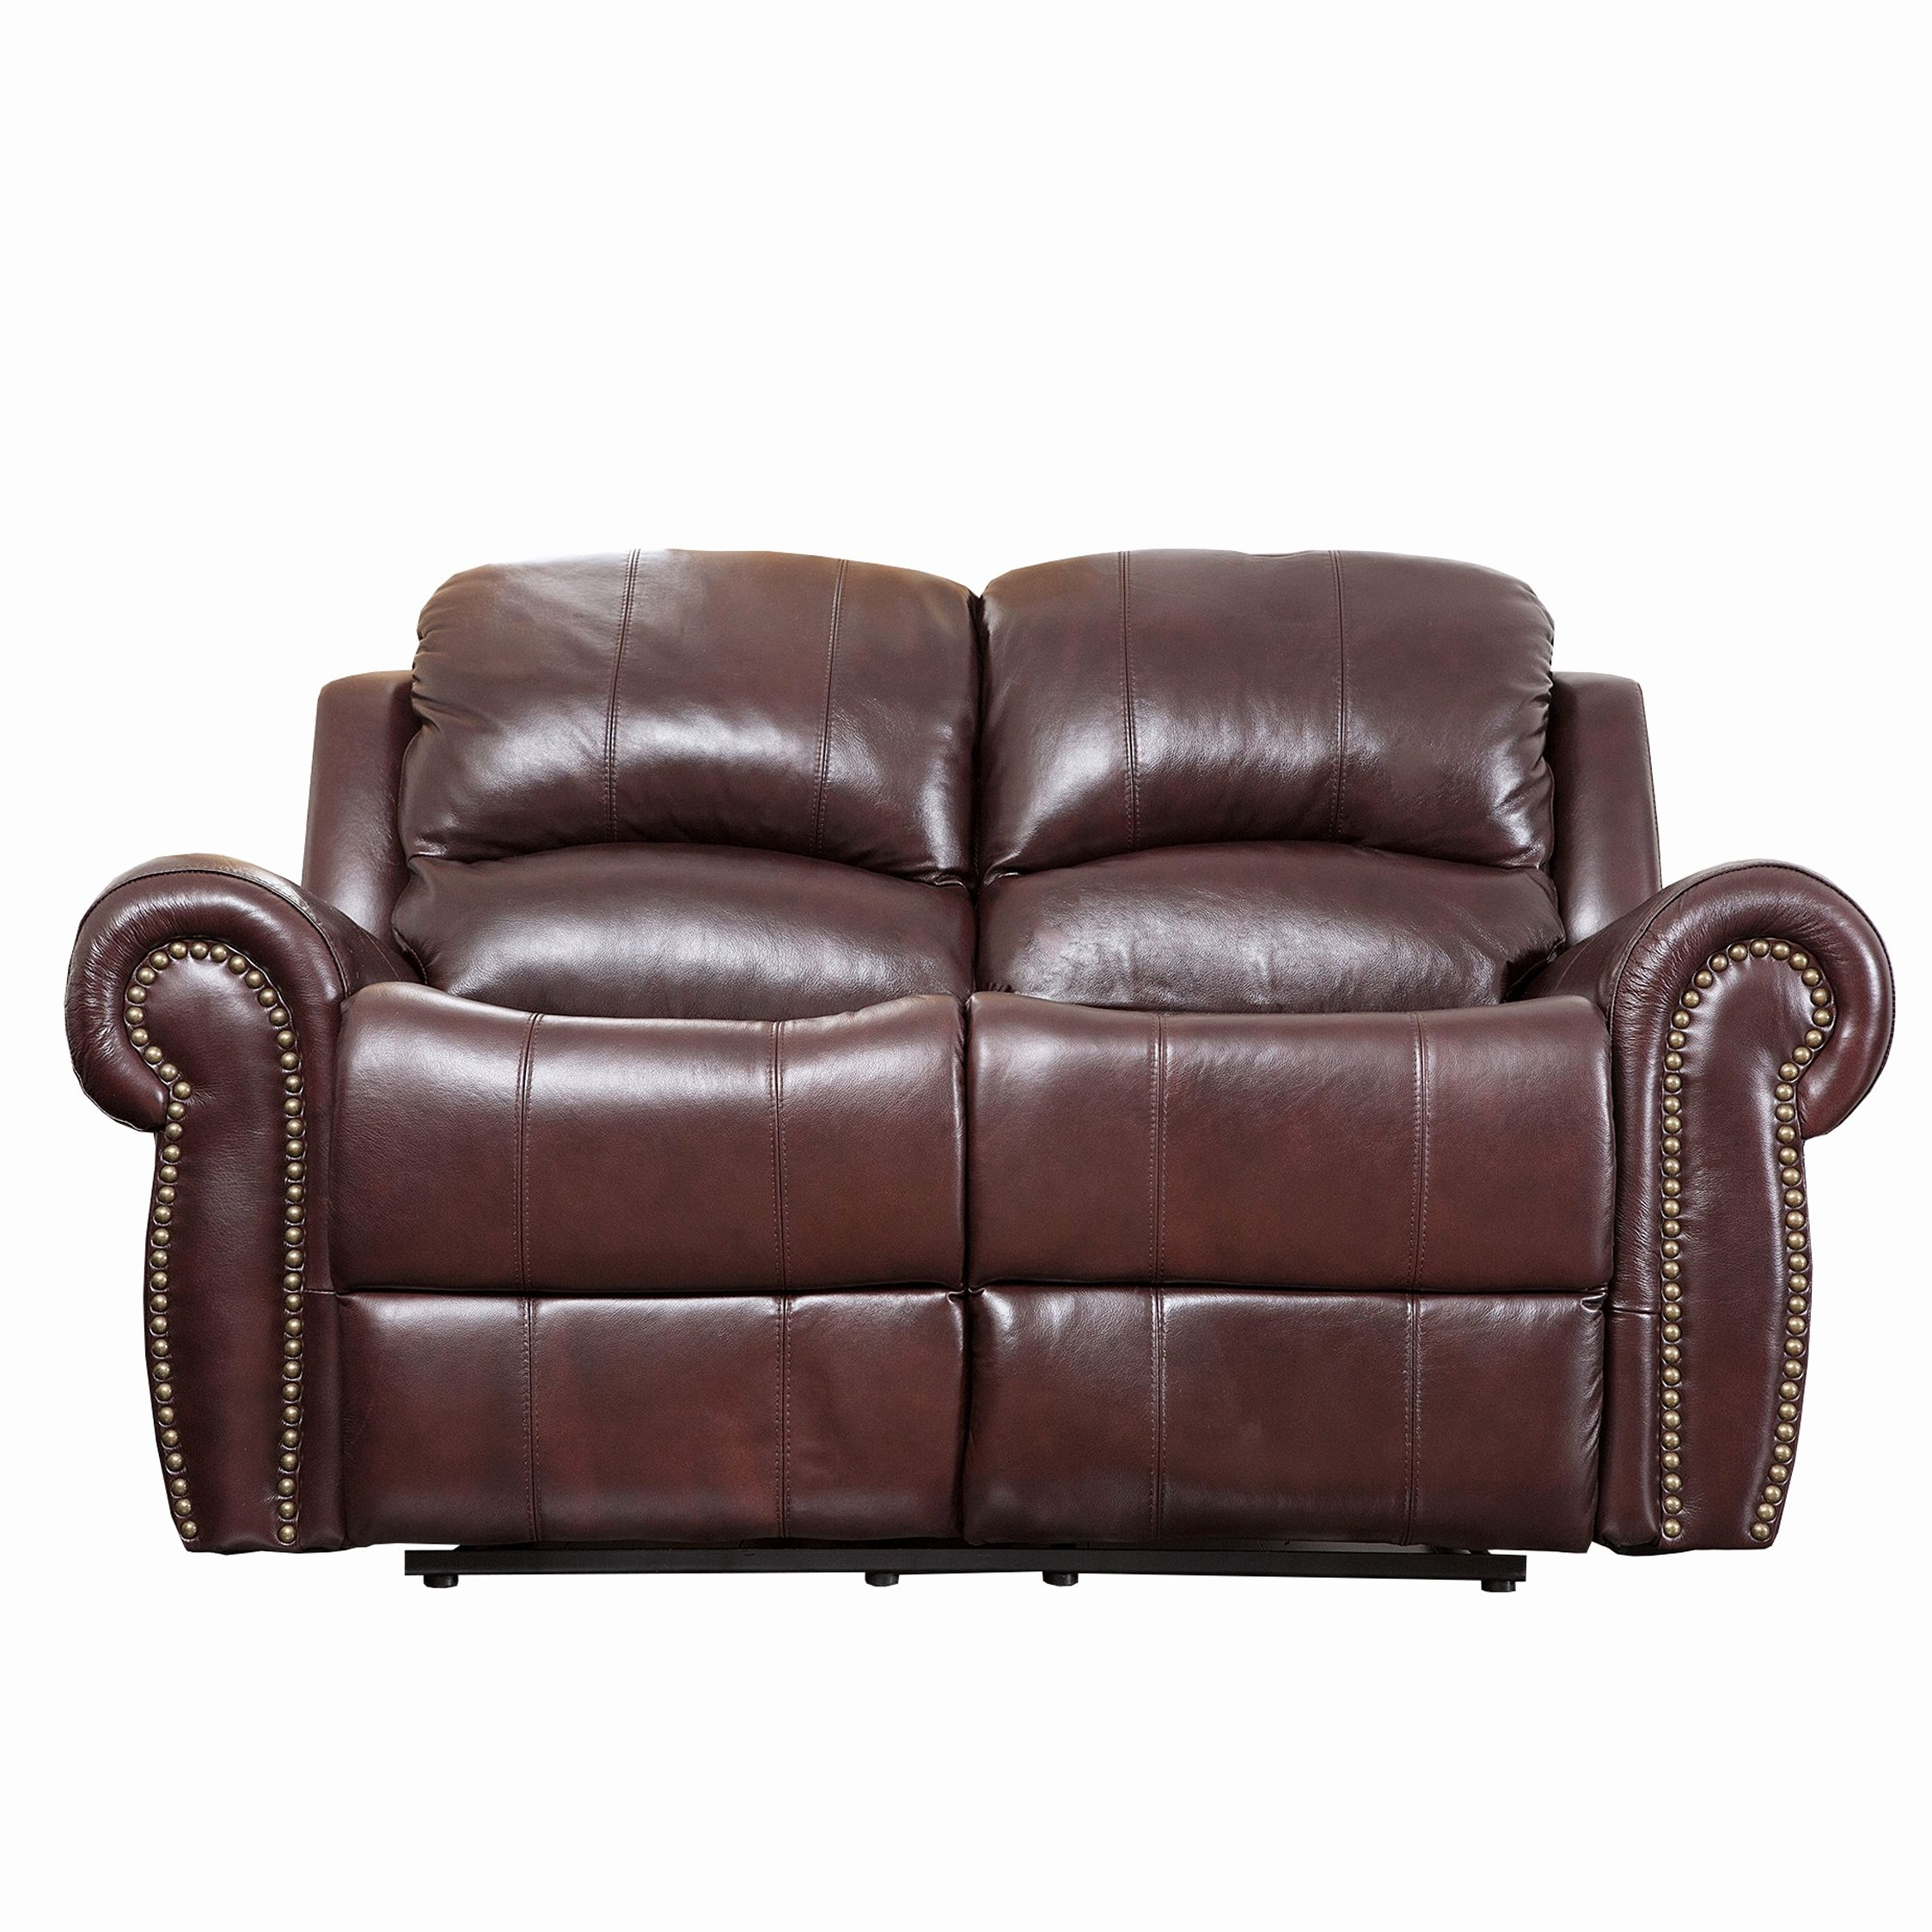 brands reclining red pictures homelegance reviews loveseat sofa the unforgettable leather leatherbest recliner for brandsbest design best and tall